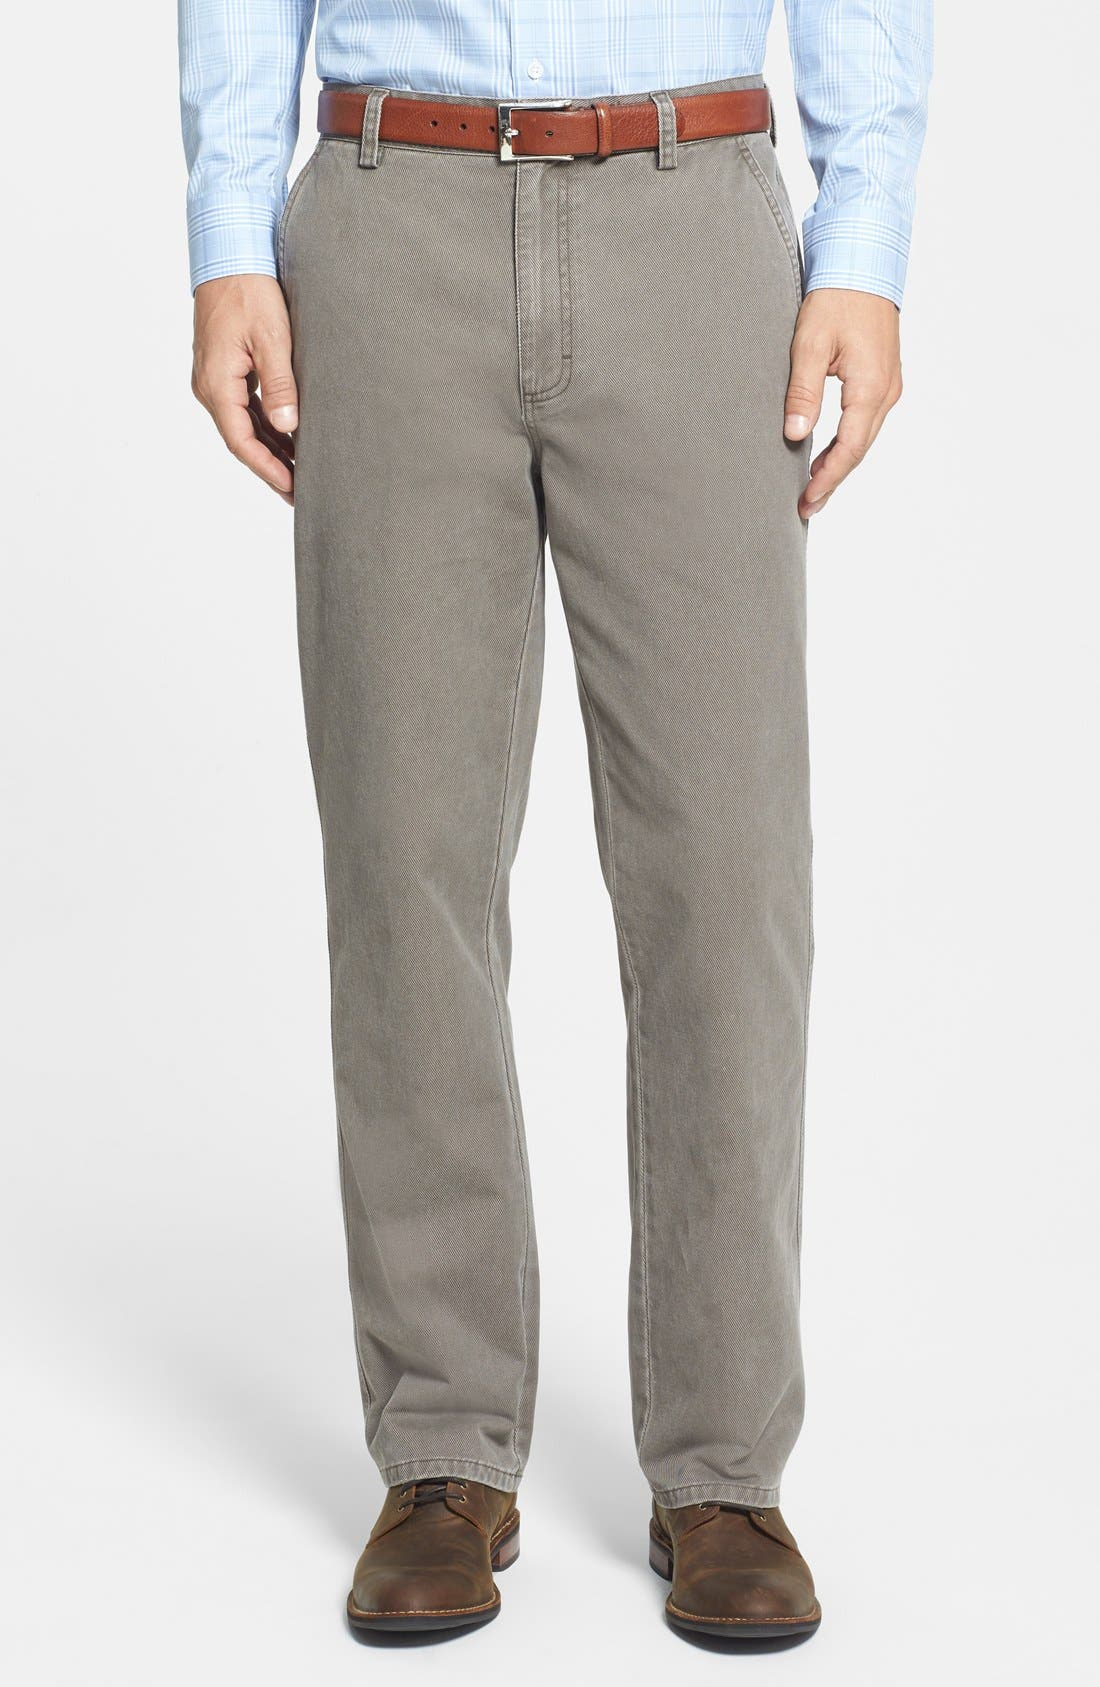 Alternate Image 1 Selected - Cutter & Buck Curtis Flat Front Five-Pocket Cotton Twill Pants